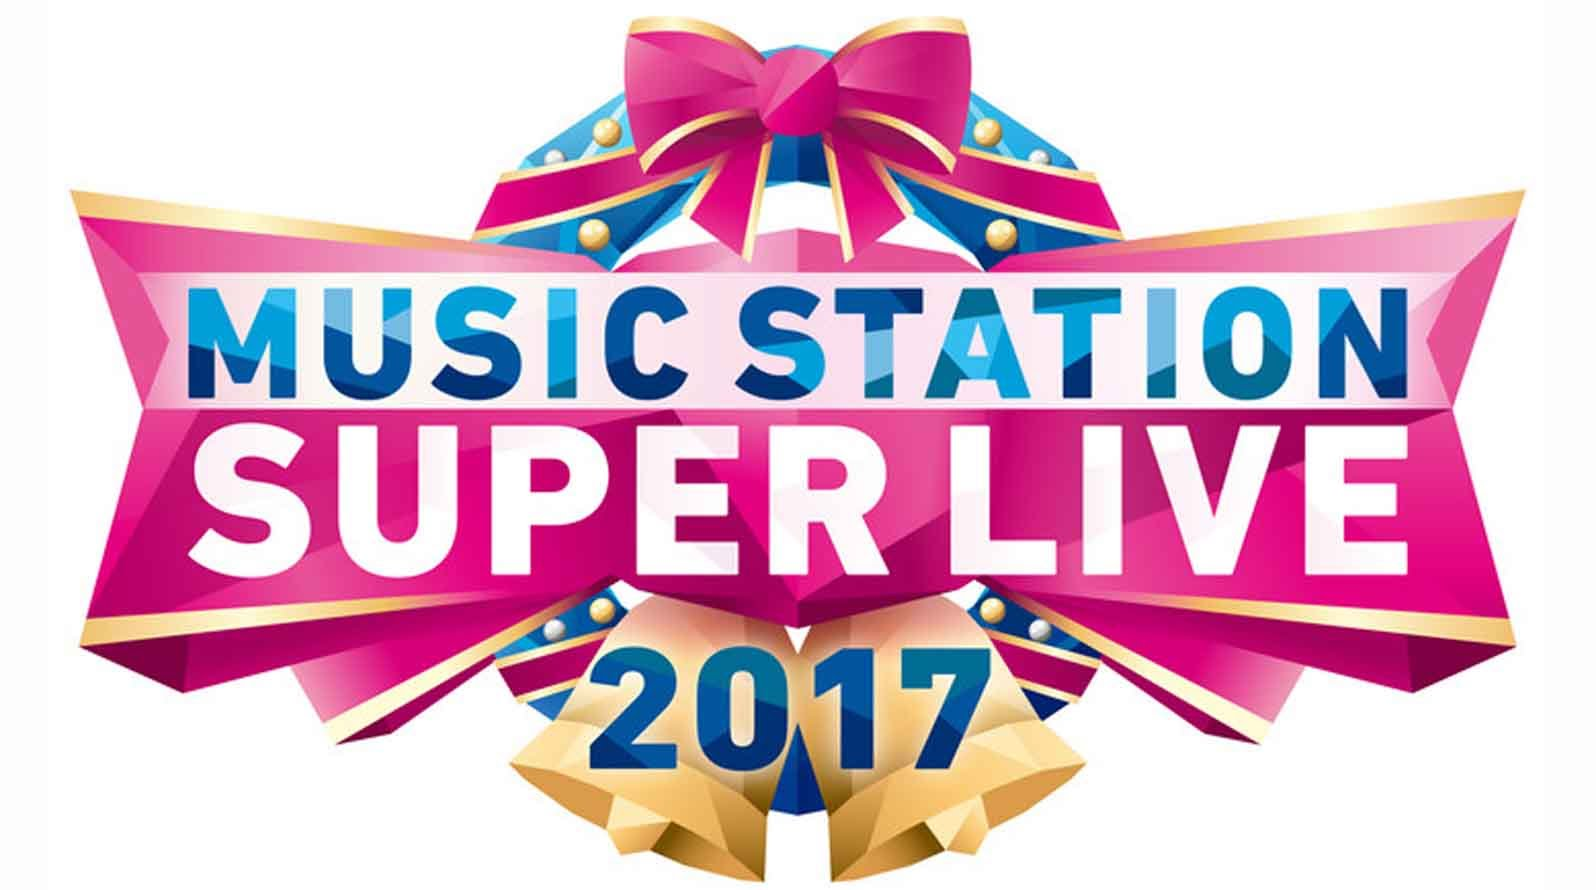 MUSIC STATION SUPER LIVE 2017!史上最多47組演出者+曲目全公開